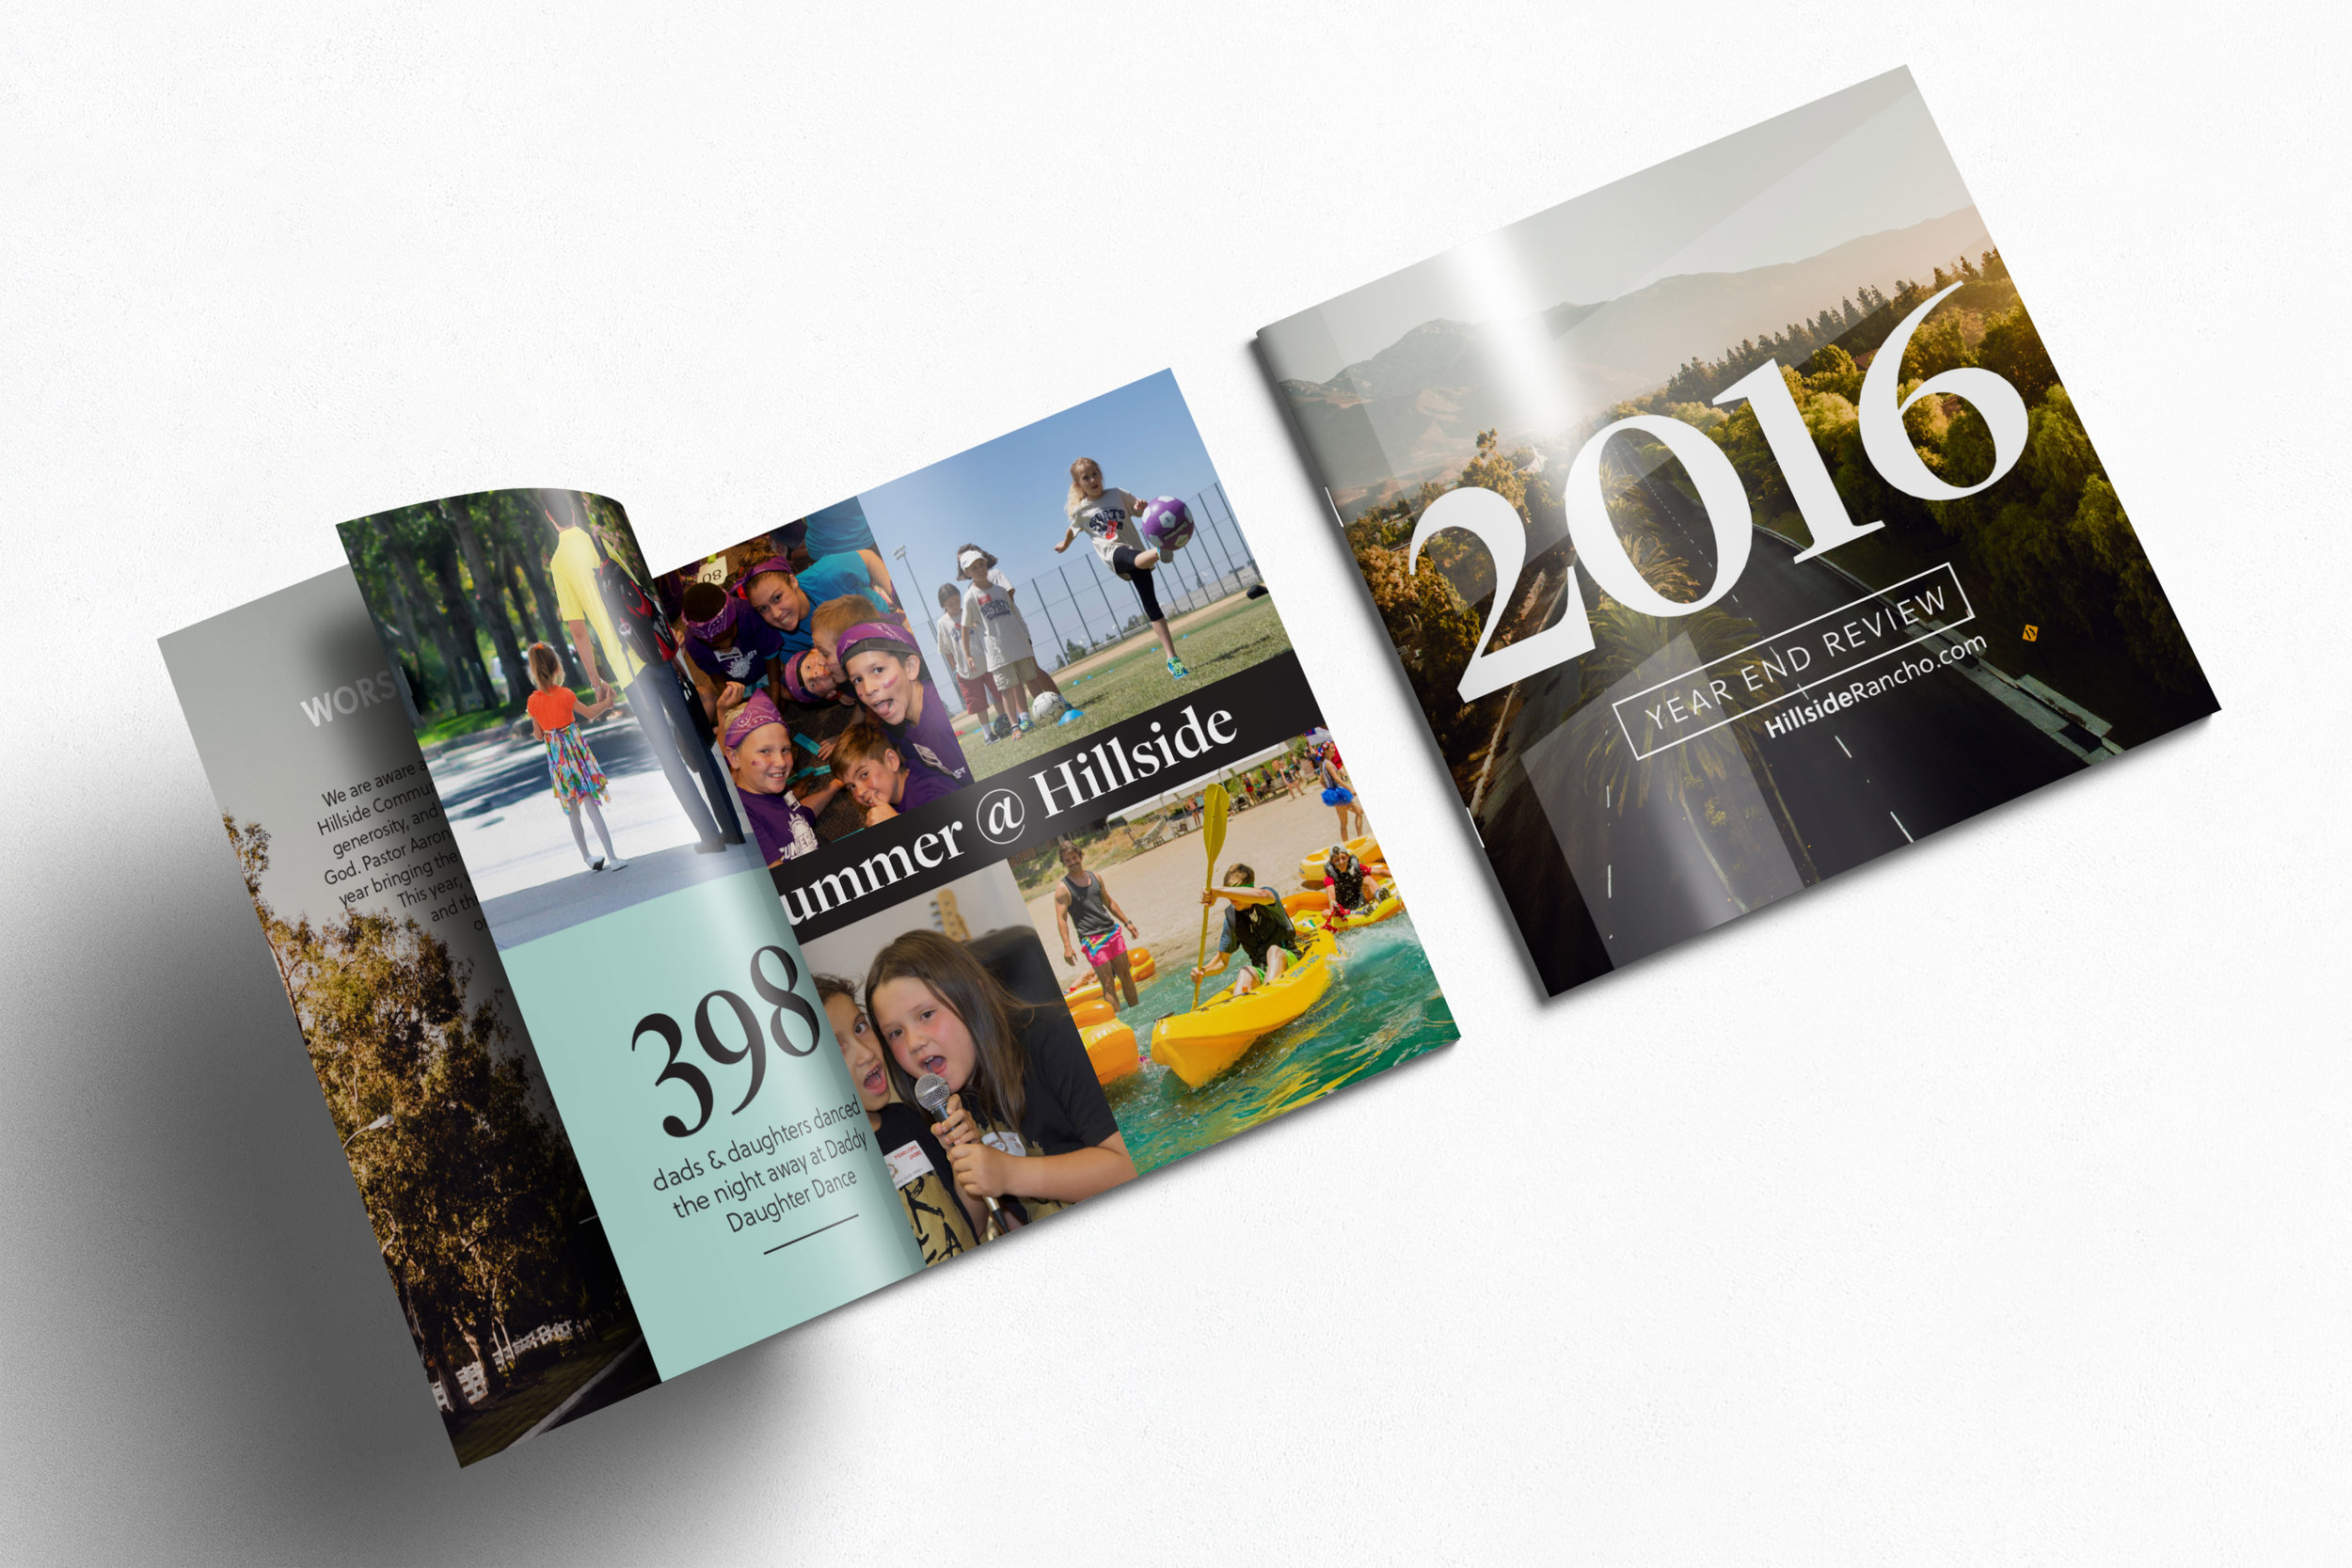 Year End Review Booklet 2016